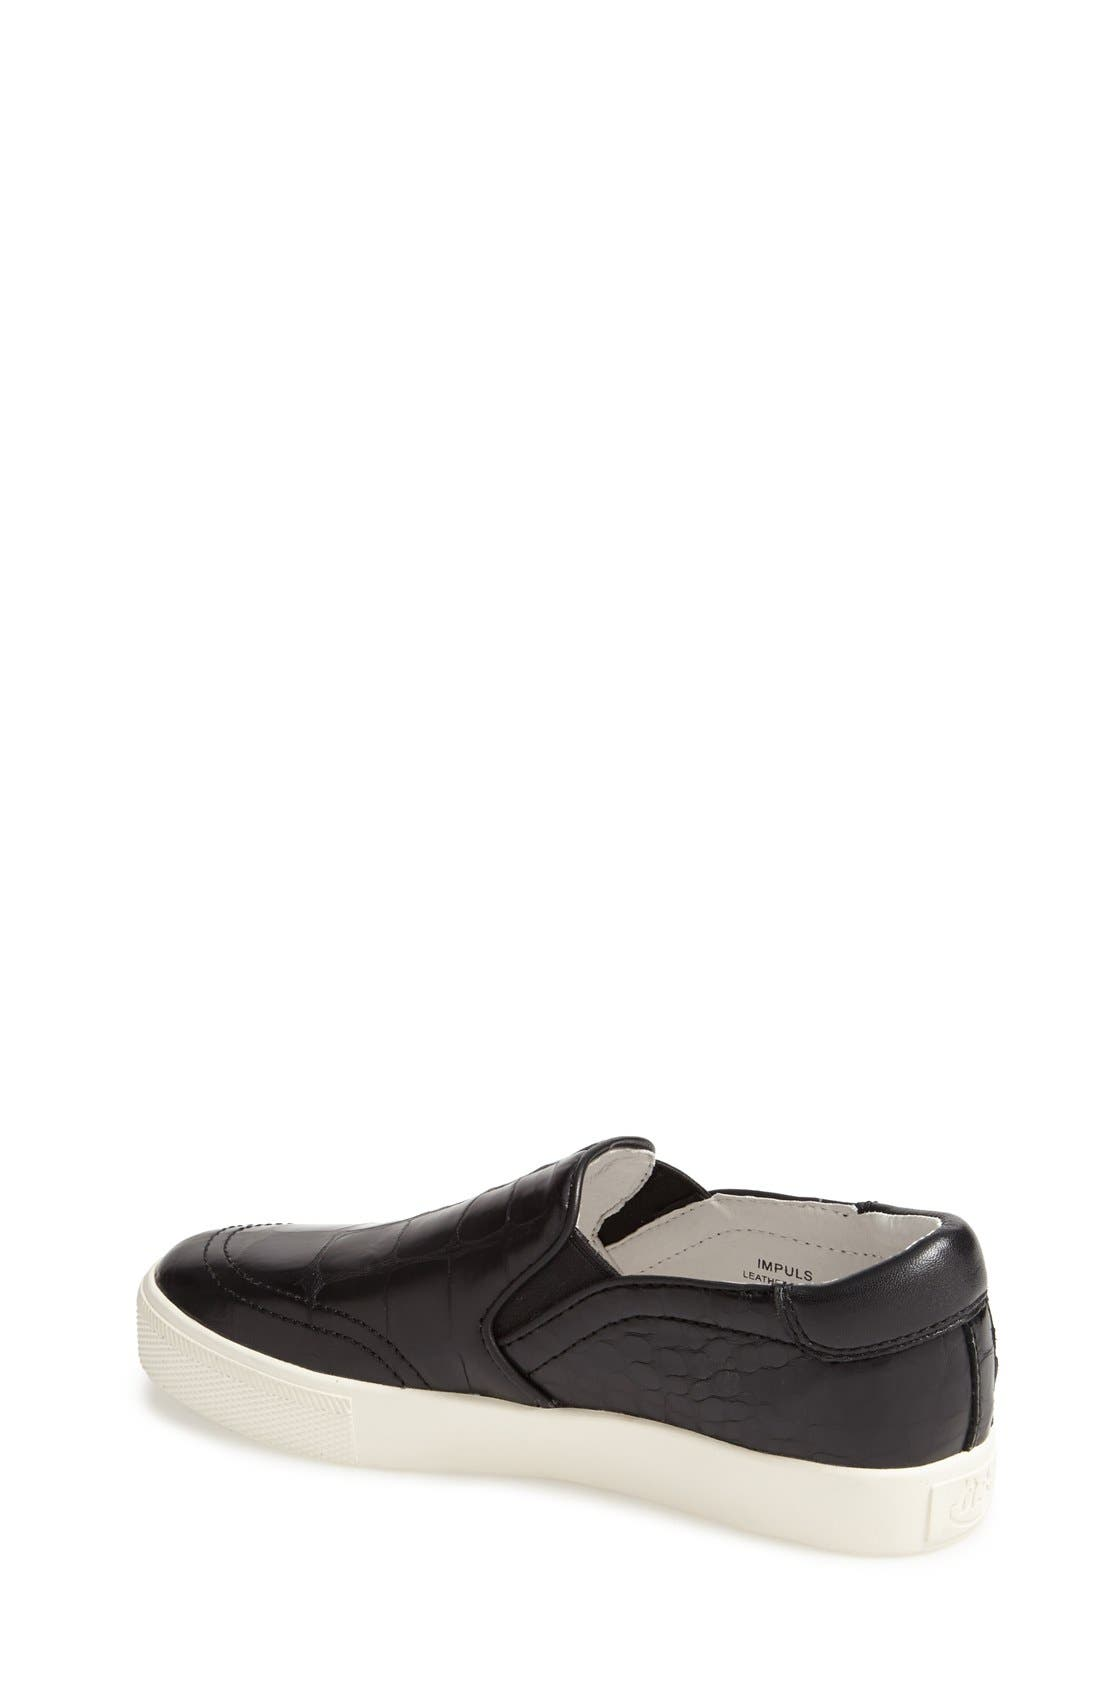 Alternate Image 2  - Ash 'Impuls' Croc Embossed Leather Slip-On (Women)